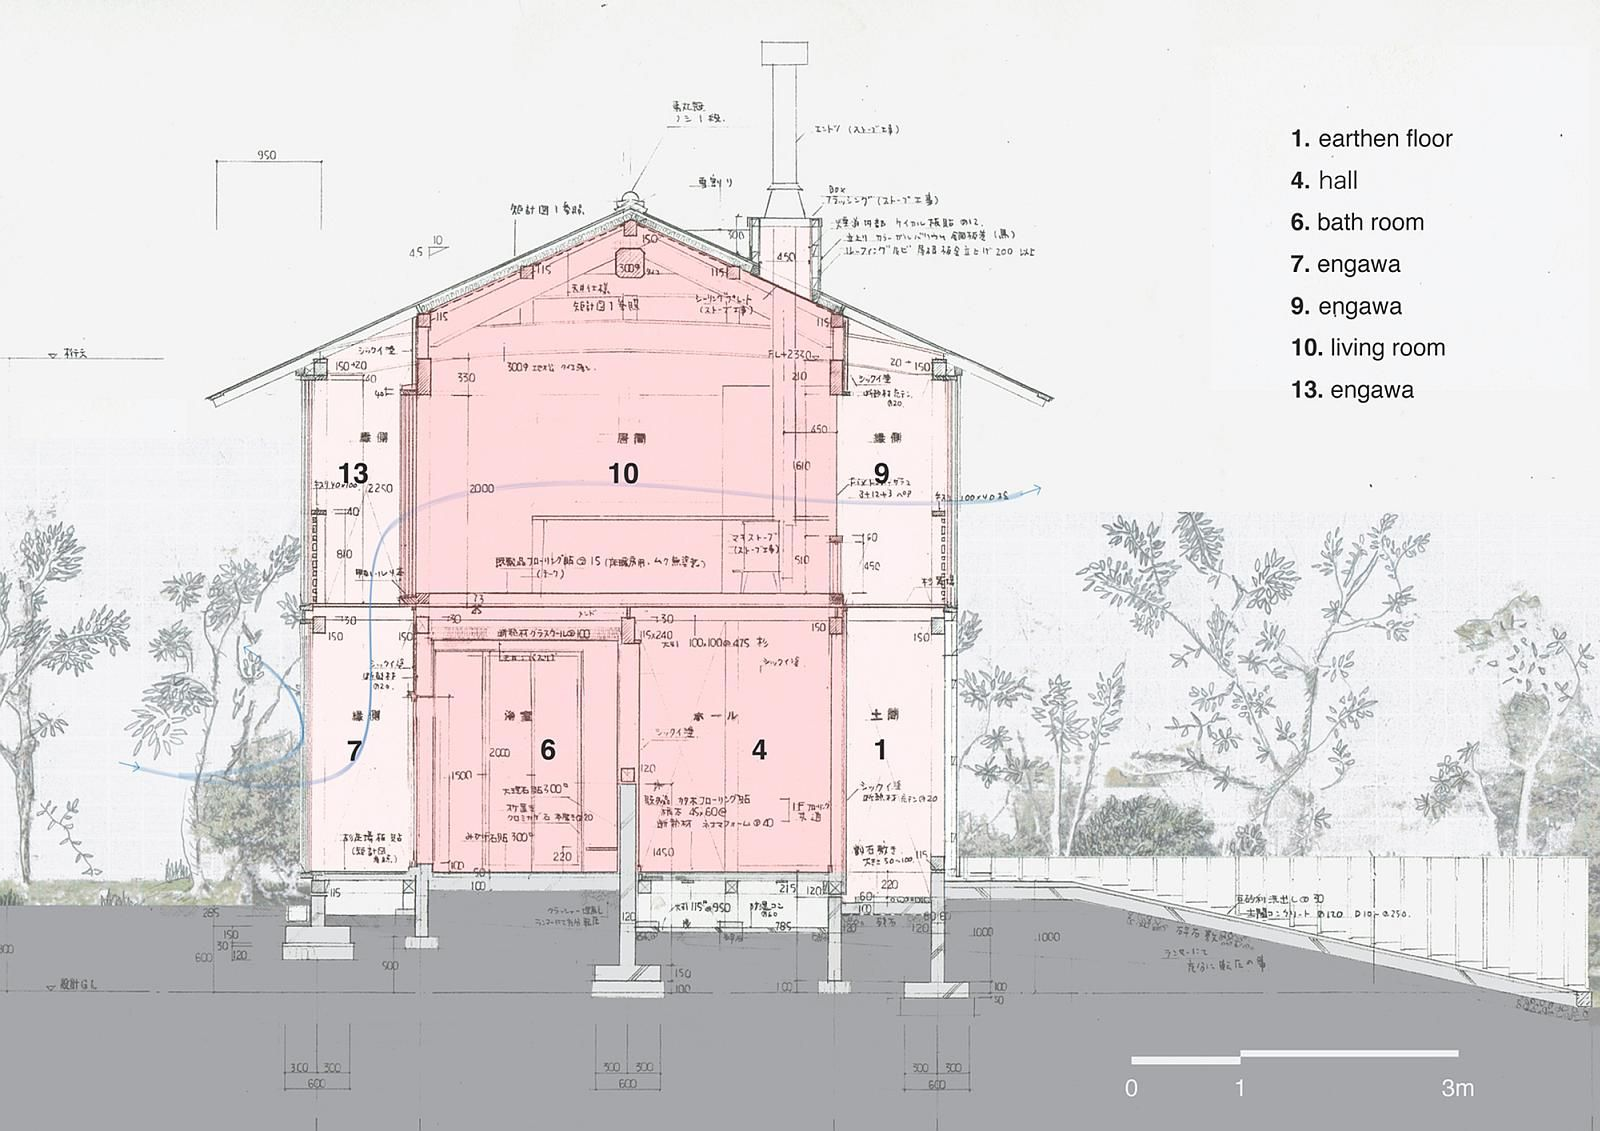 Blueprint of a traditional japanese house buscar con google blueprint of a traditional japanese house buscar con google malvernweather Image collections